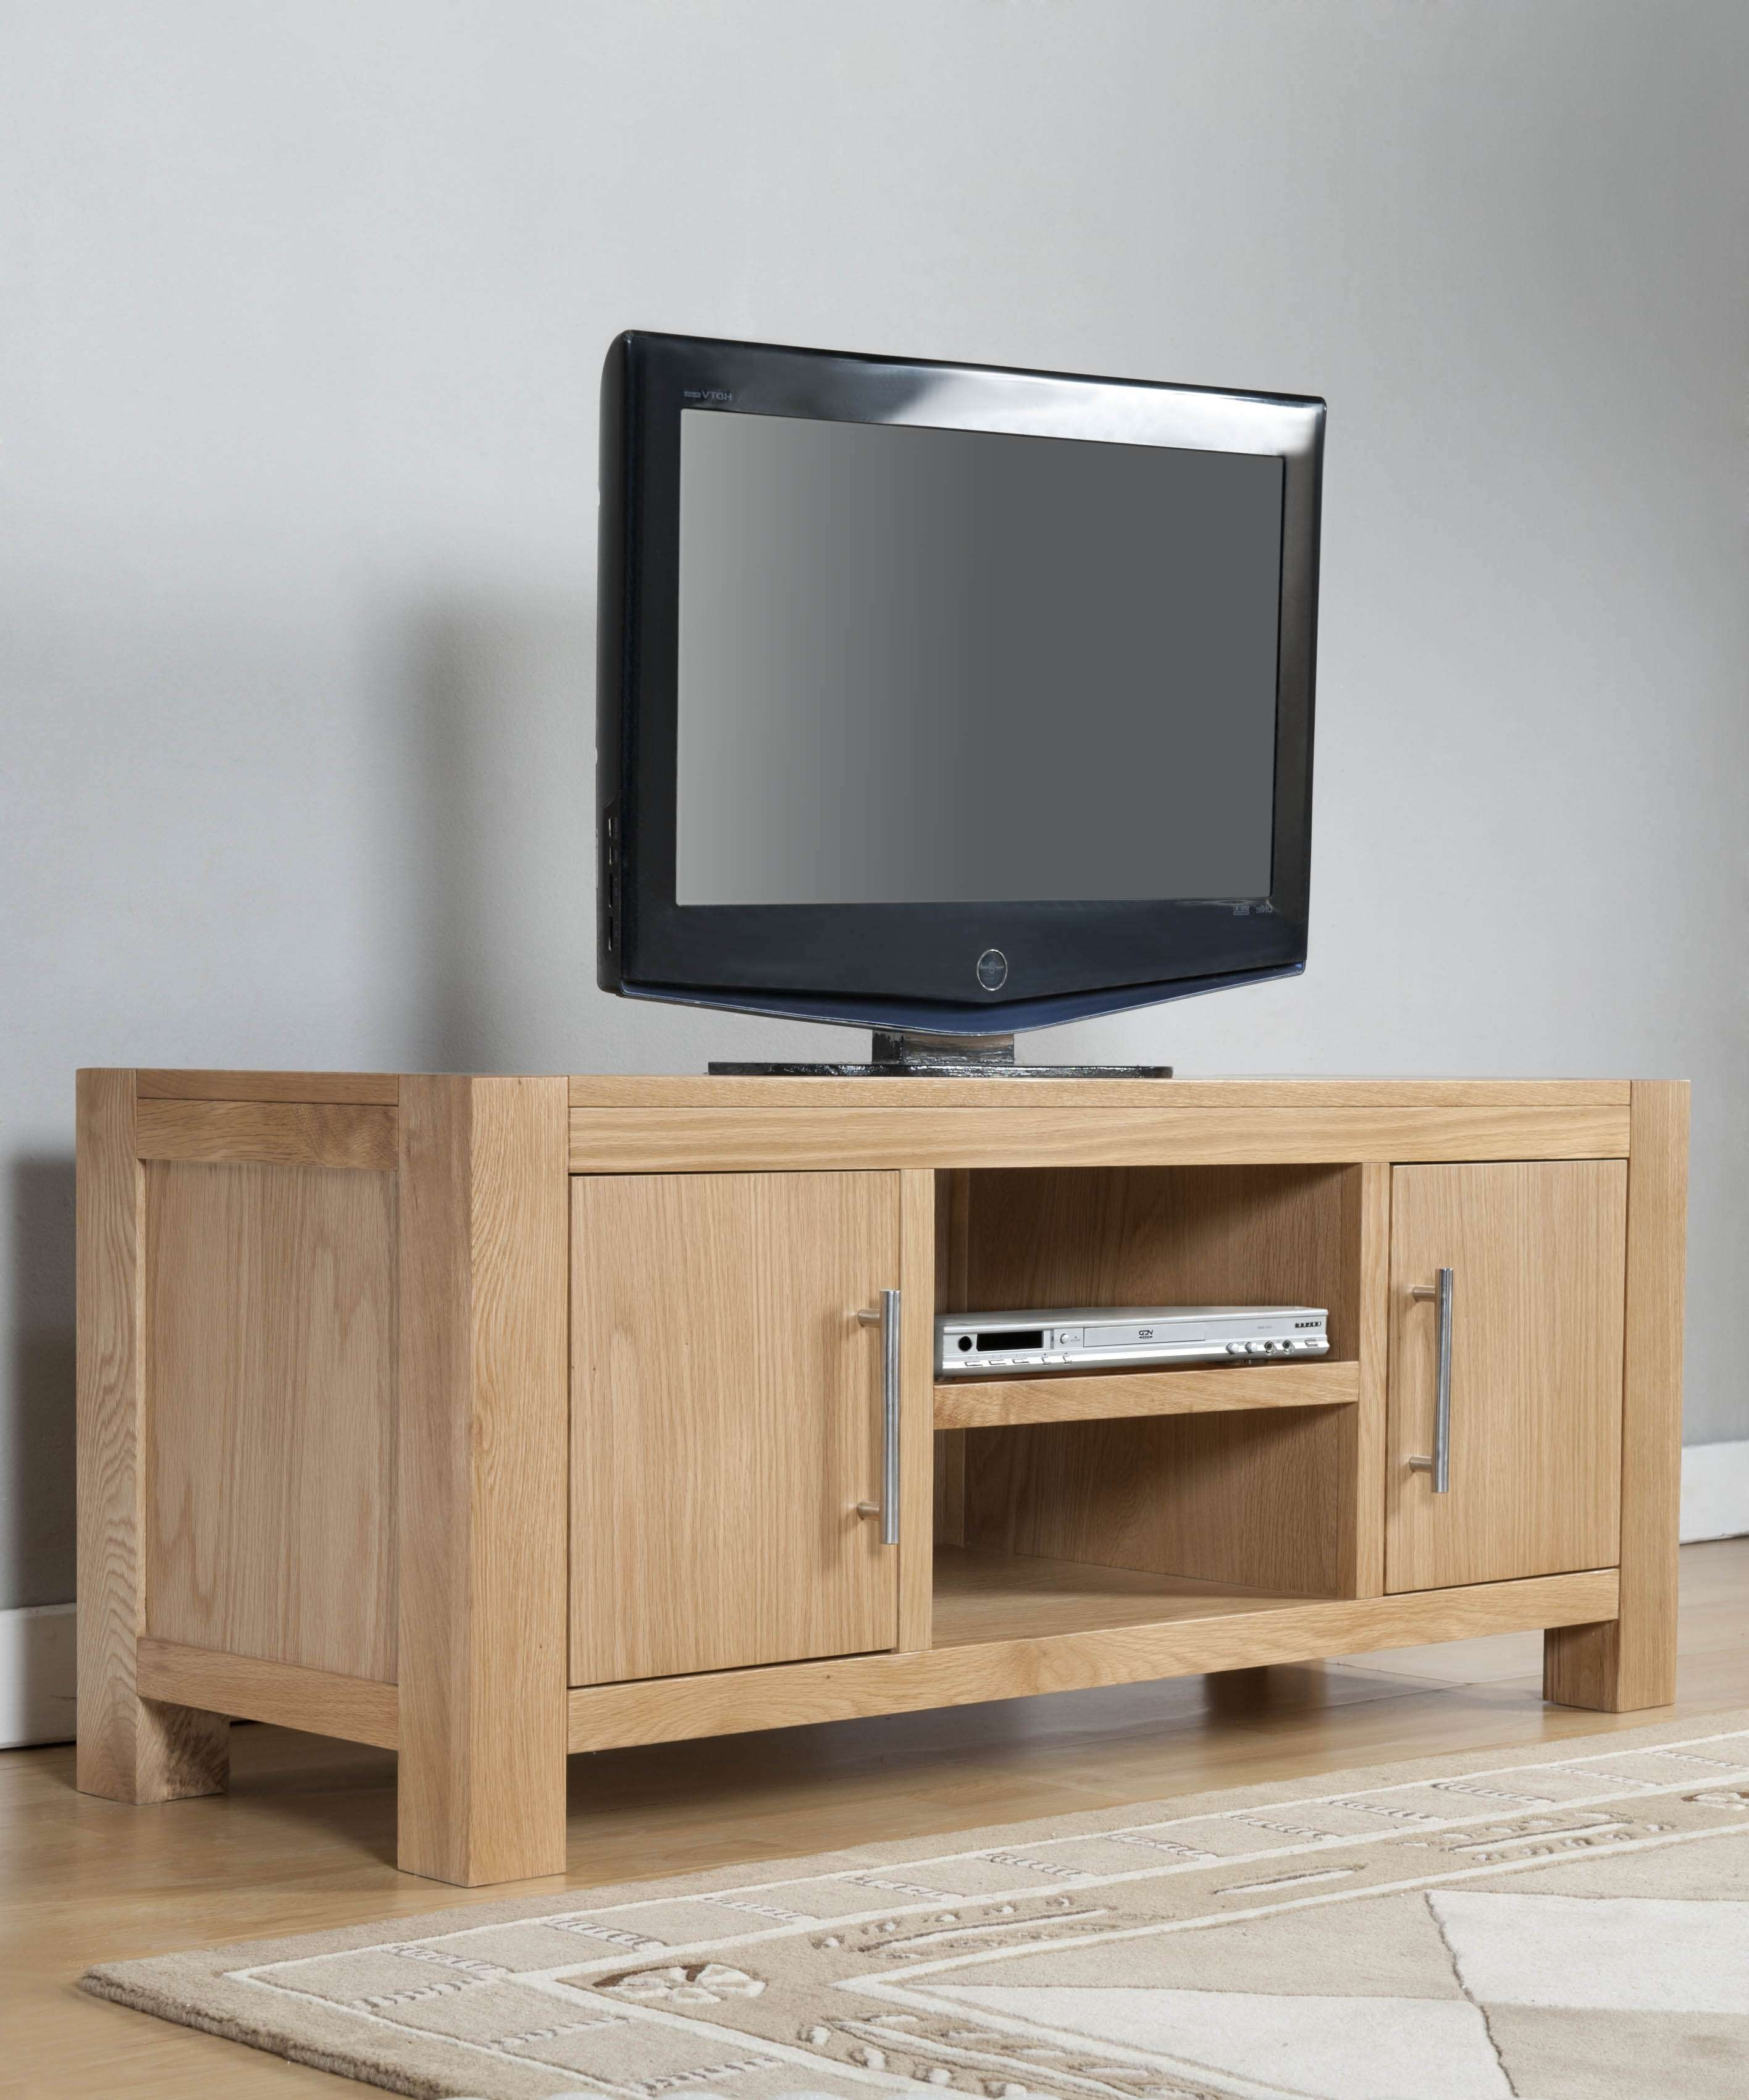 Milano Oak 2 Door Tv Stand With Shelf | Oak Furniture Solutions With Oak Tv Cabinets With Doors (View 9 of 20)